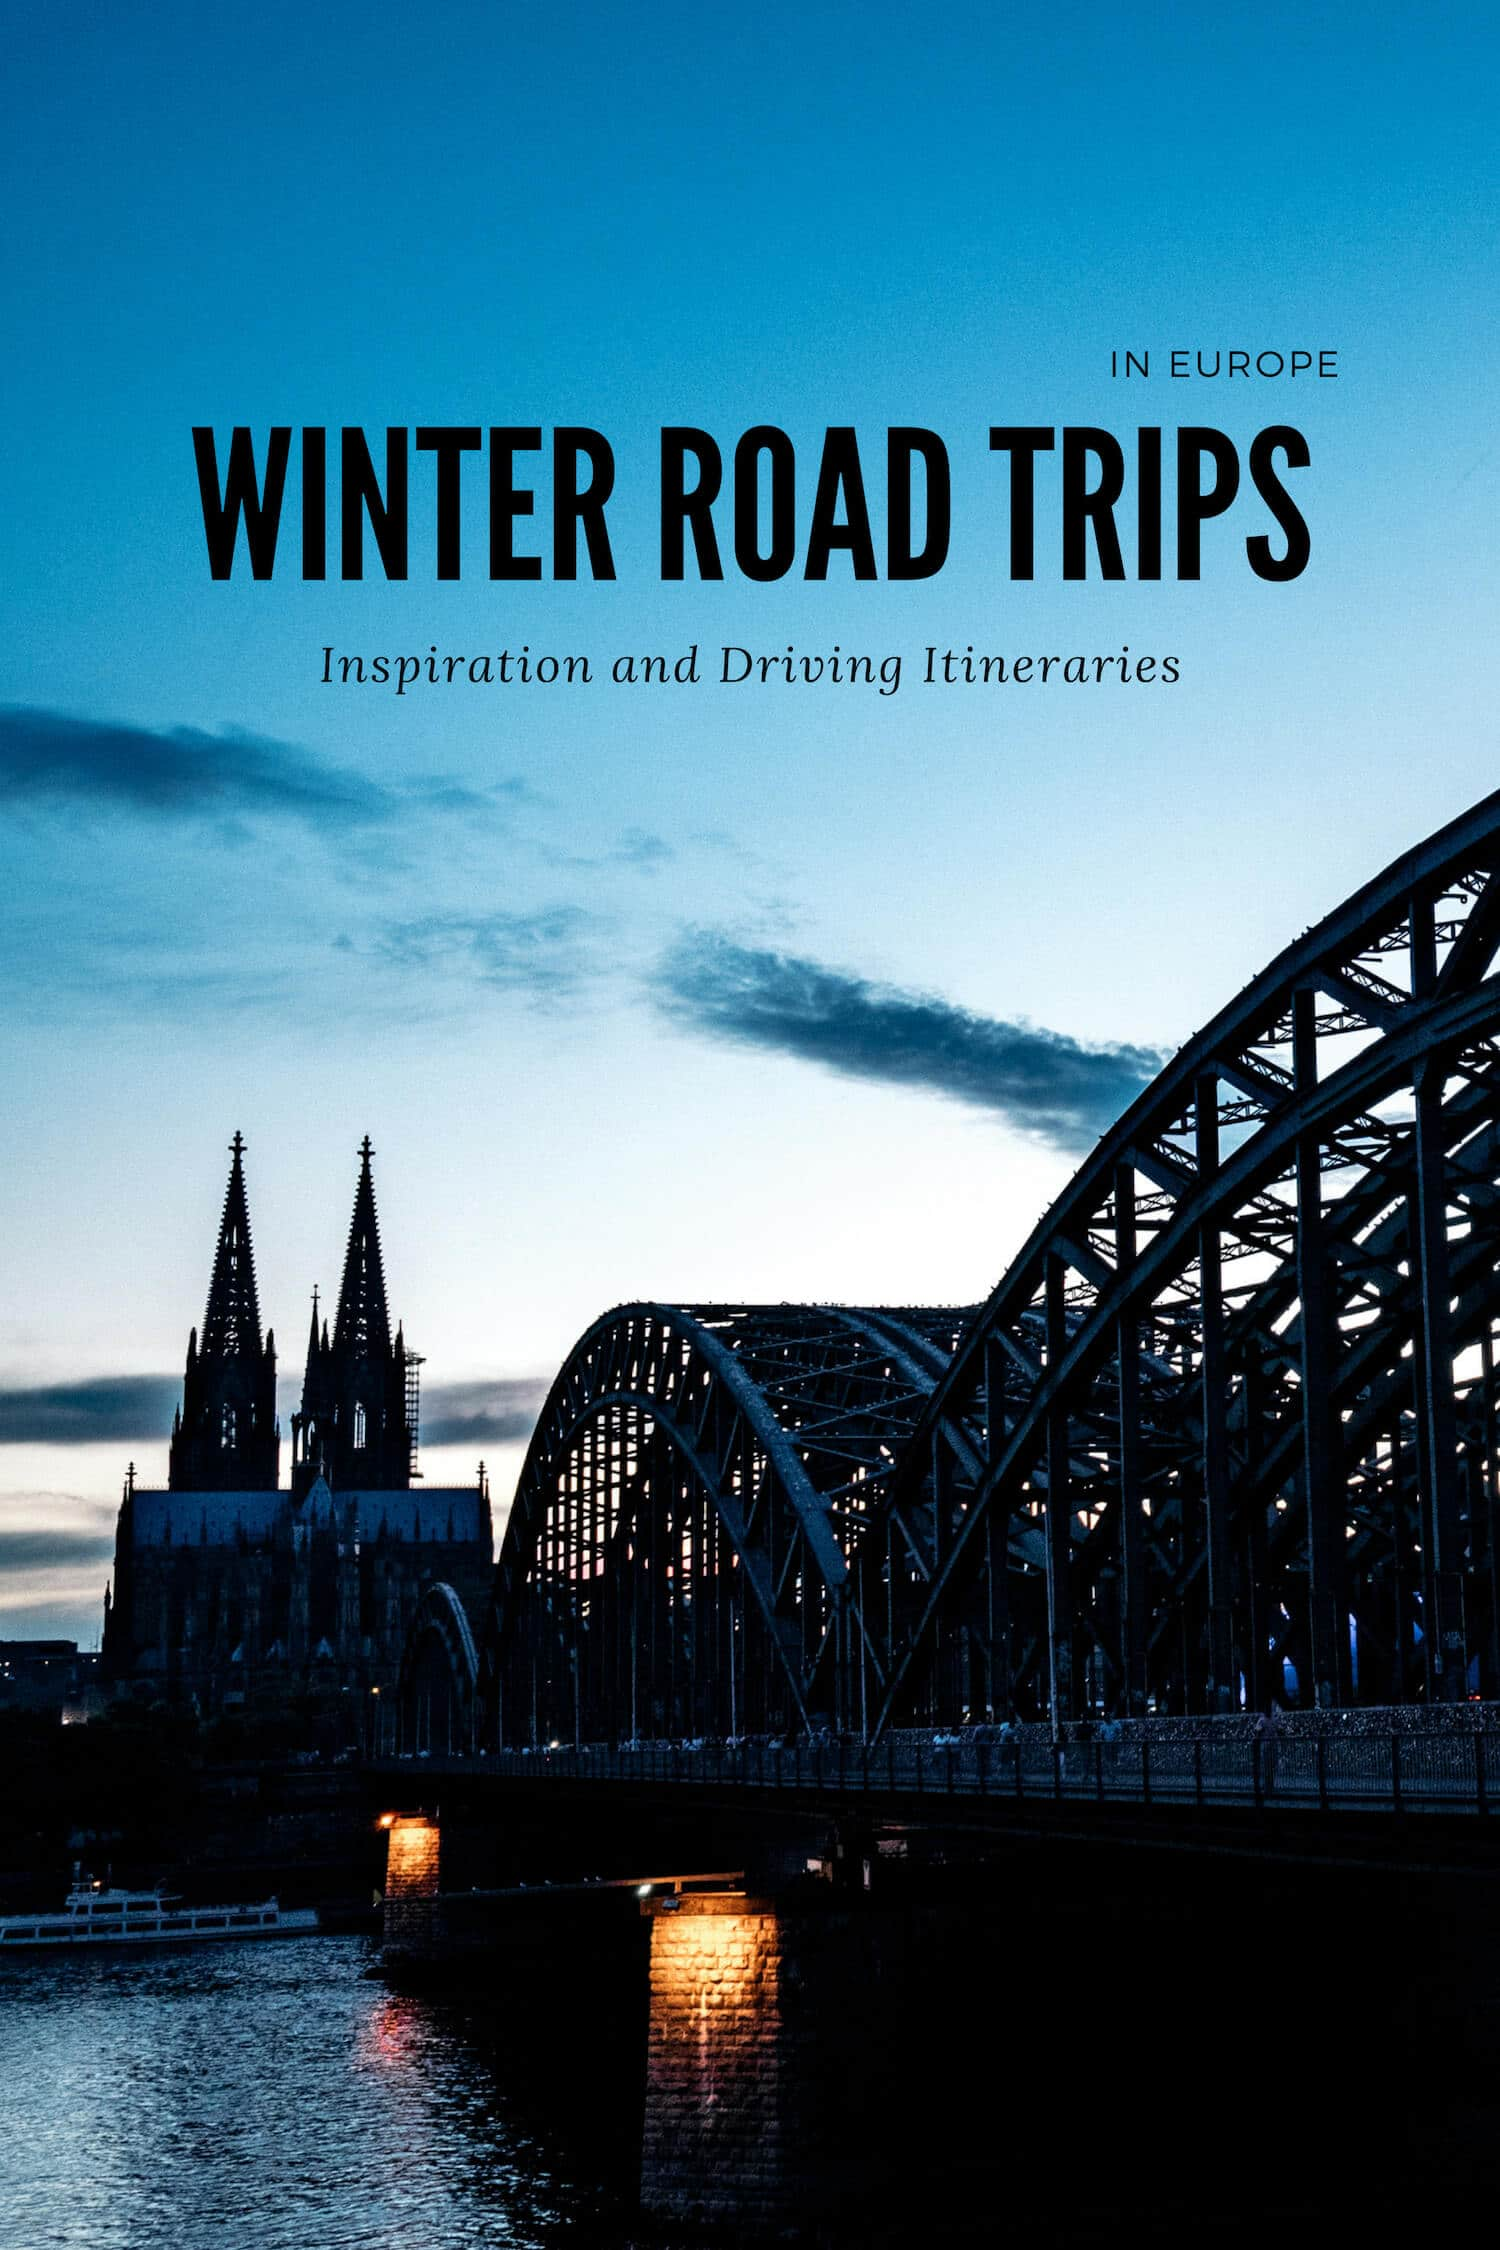 Winter Road Trips in Europe